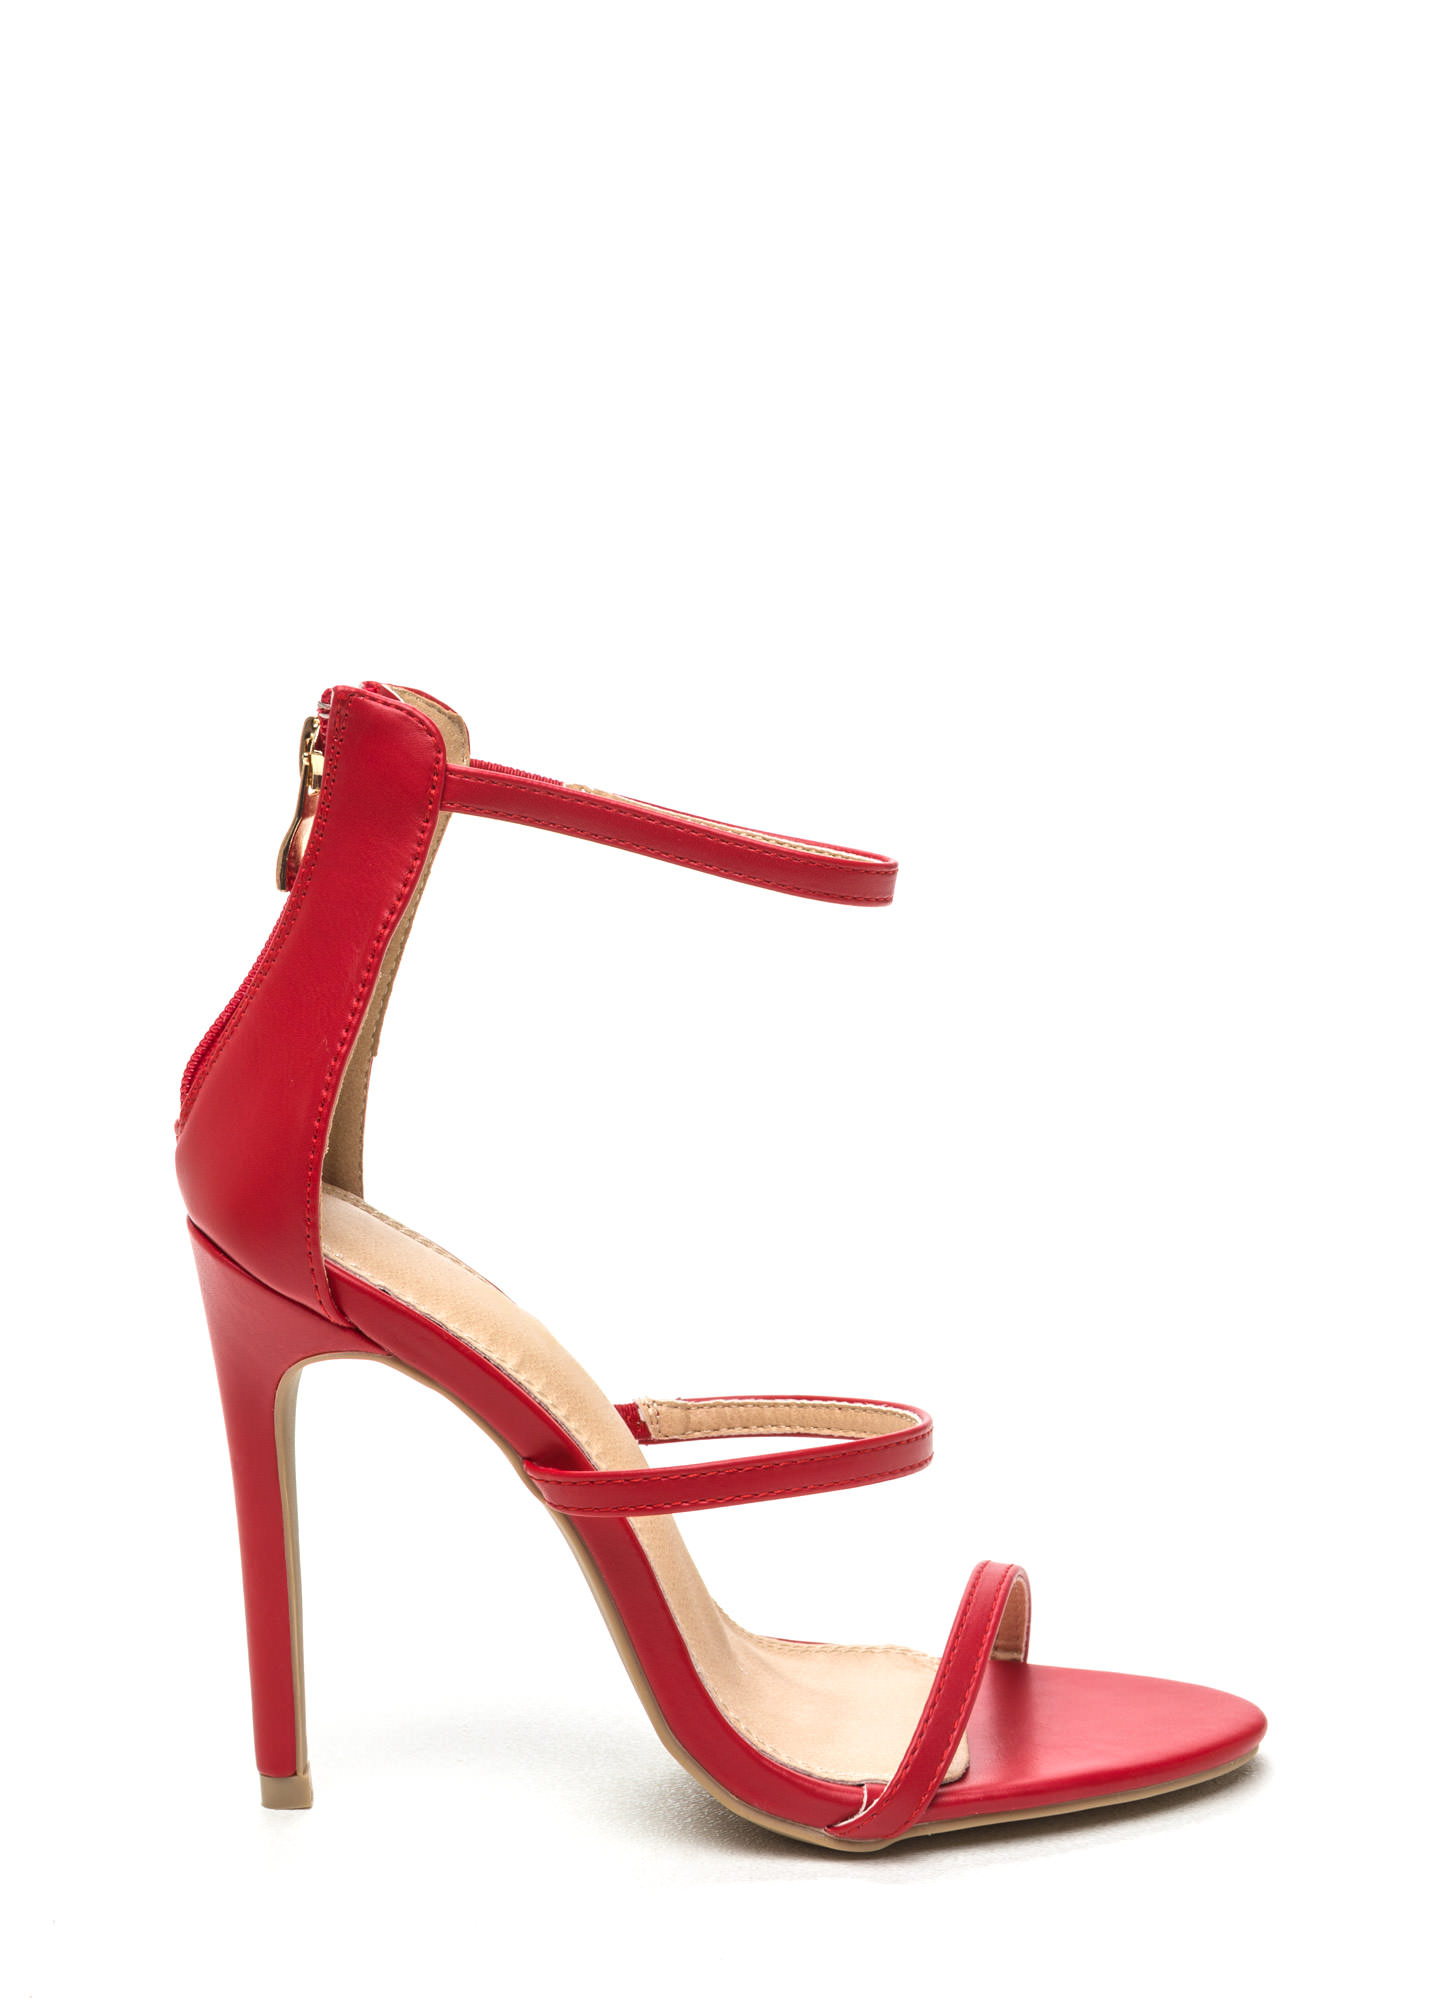 Strappy Life Single-Sole Heels RED